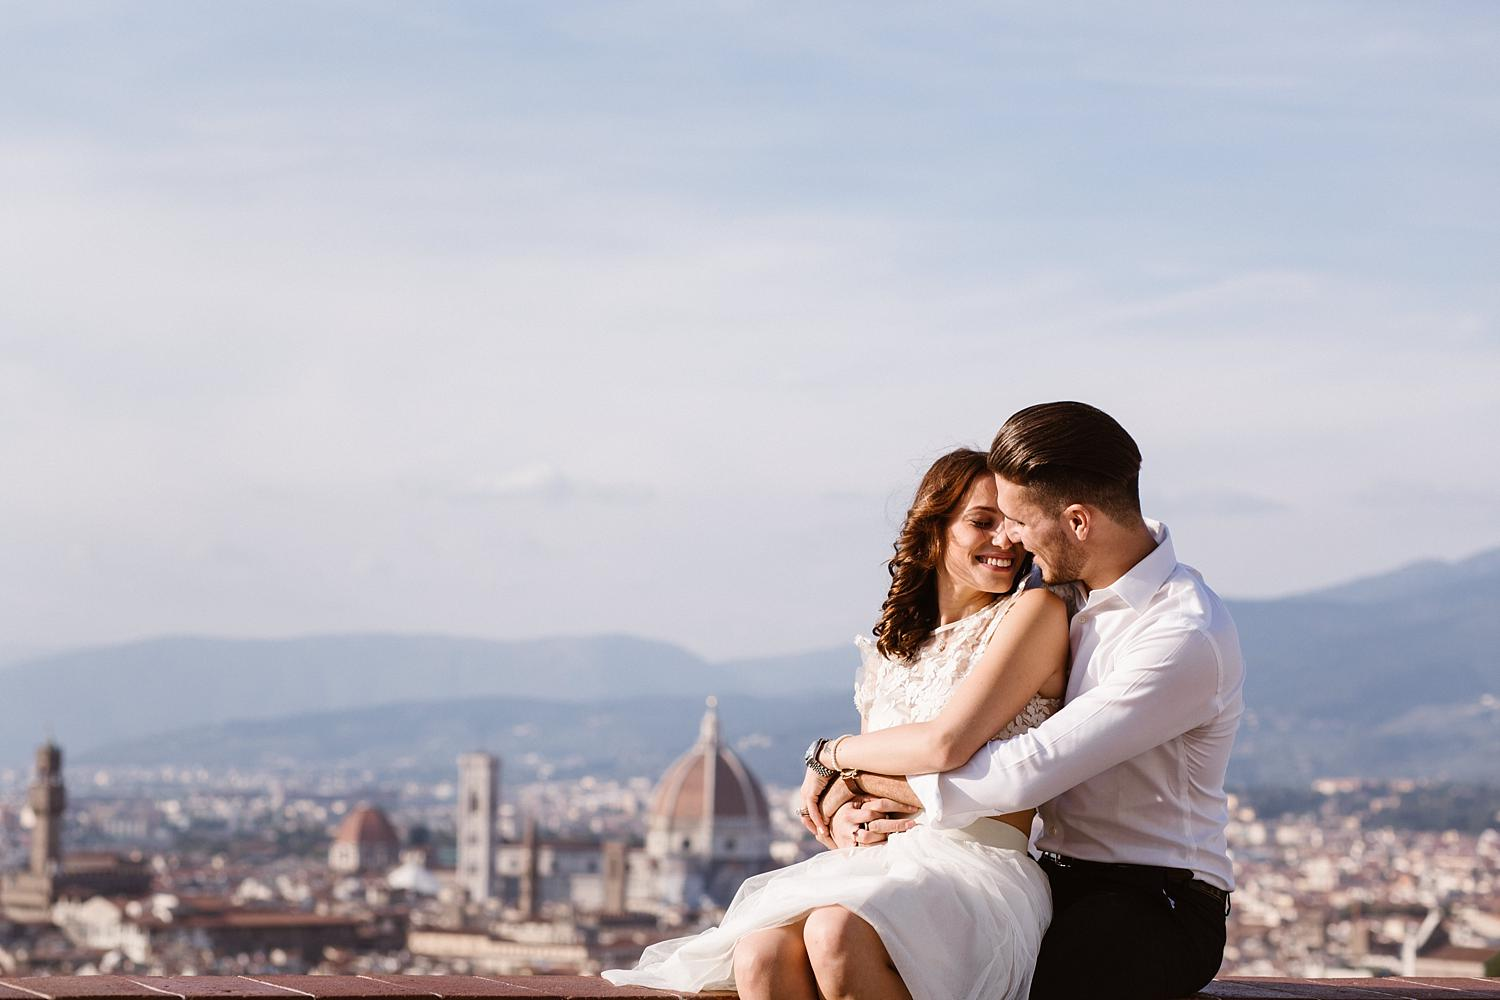 weddingphotographer florence 33 - Maddalena & Arturo - A Chic Anniversary Session in Florence